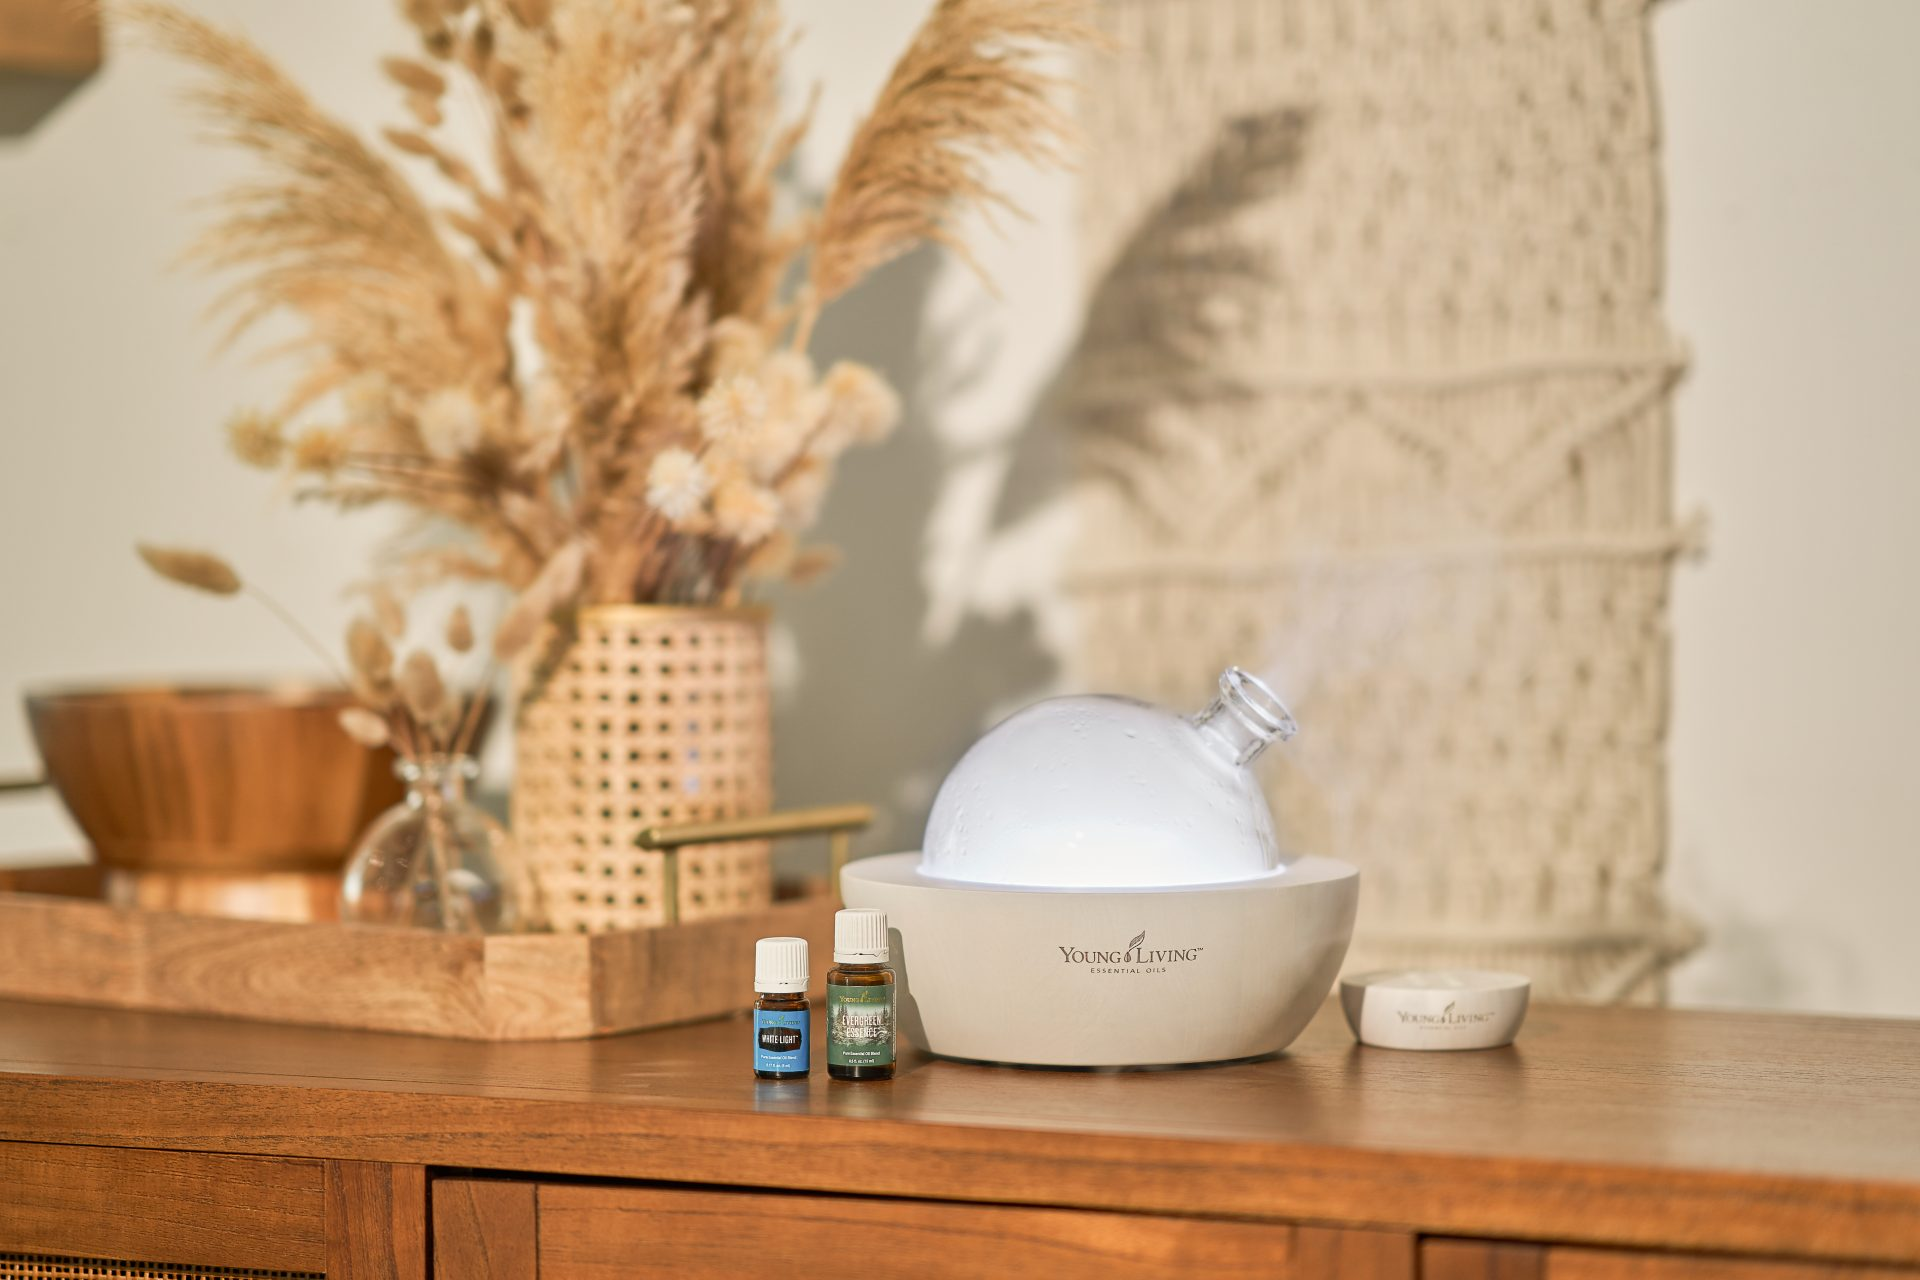 Young Living Essential oils and diffuser